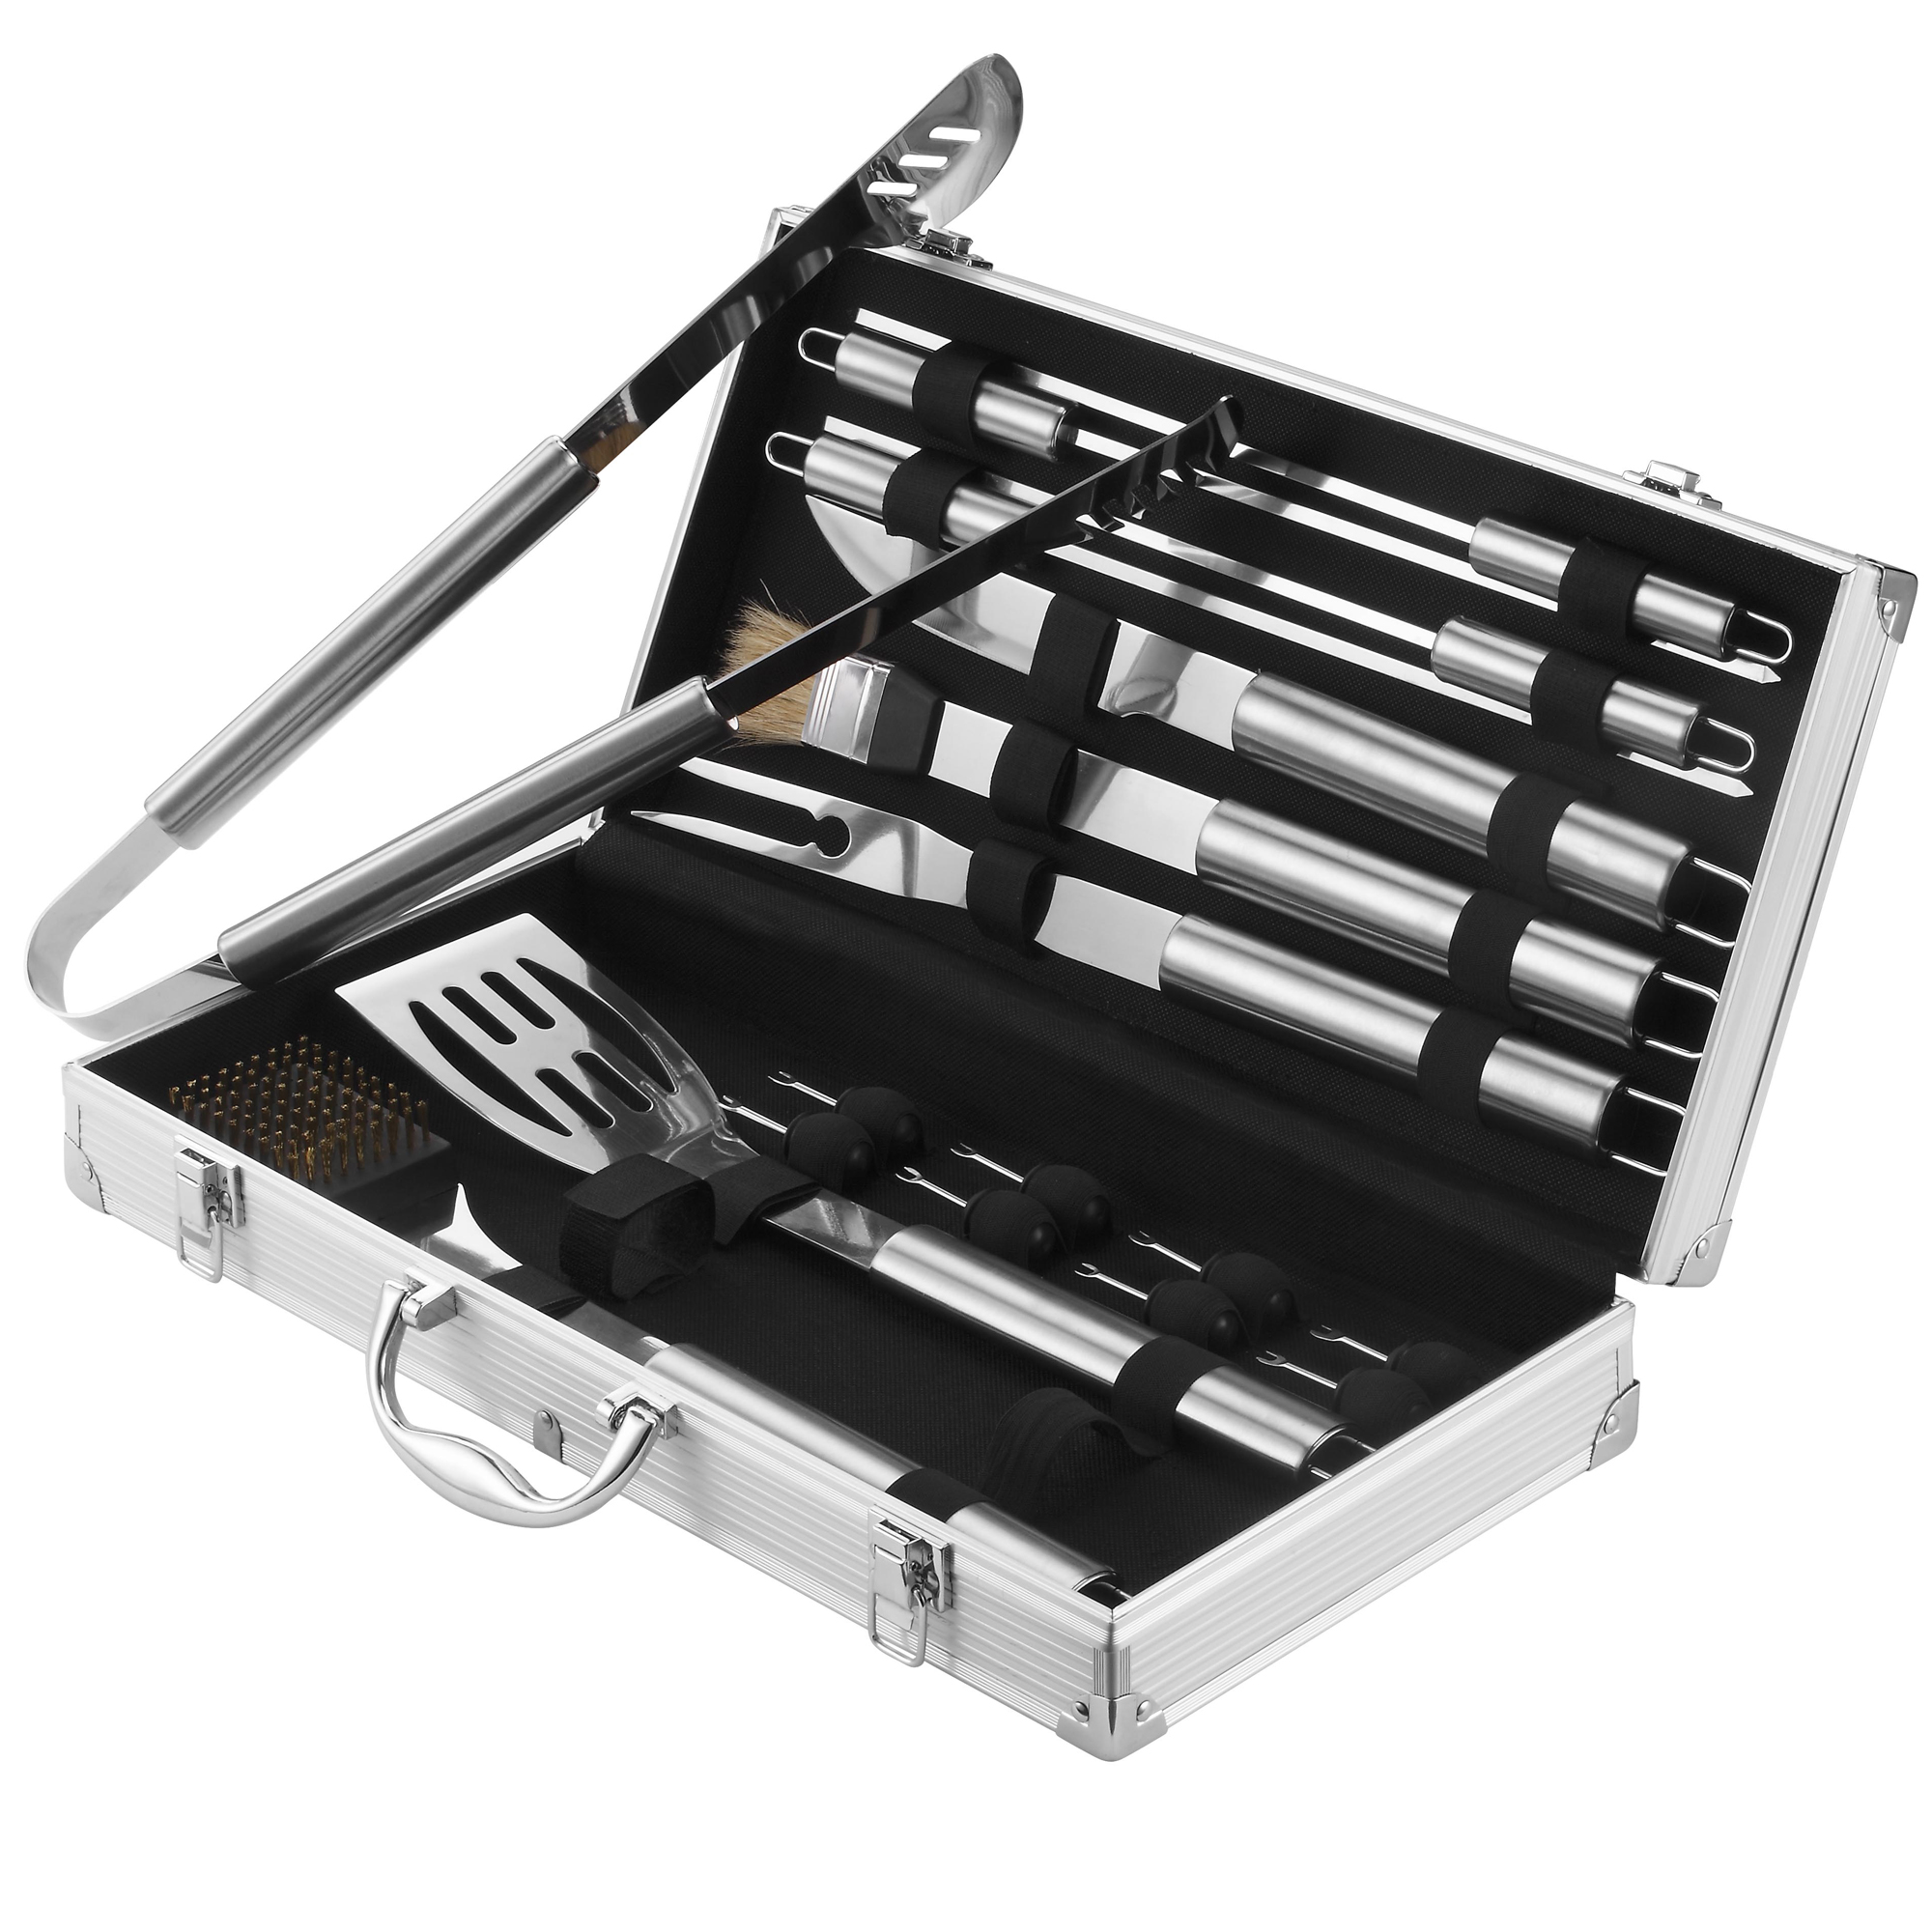 Details About Vonhaus 18pc Stainless Steel Bbq Barbecue Grill Tool Set With Storage Case